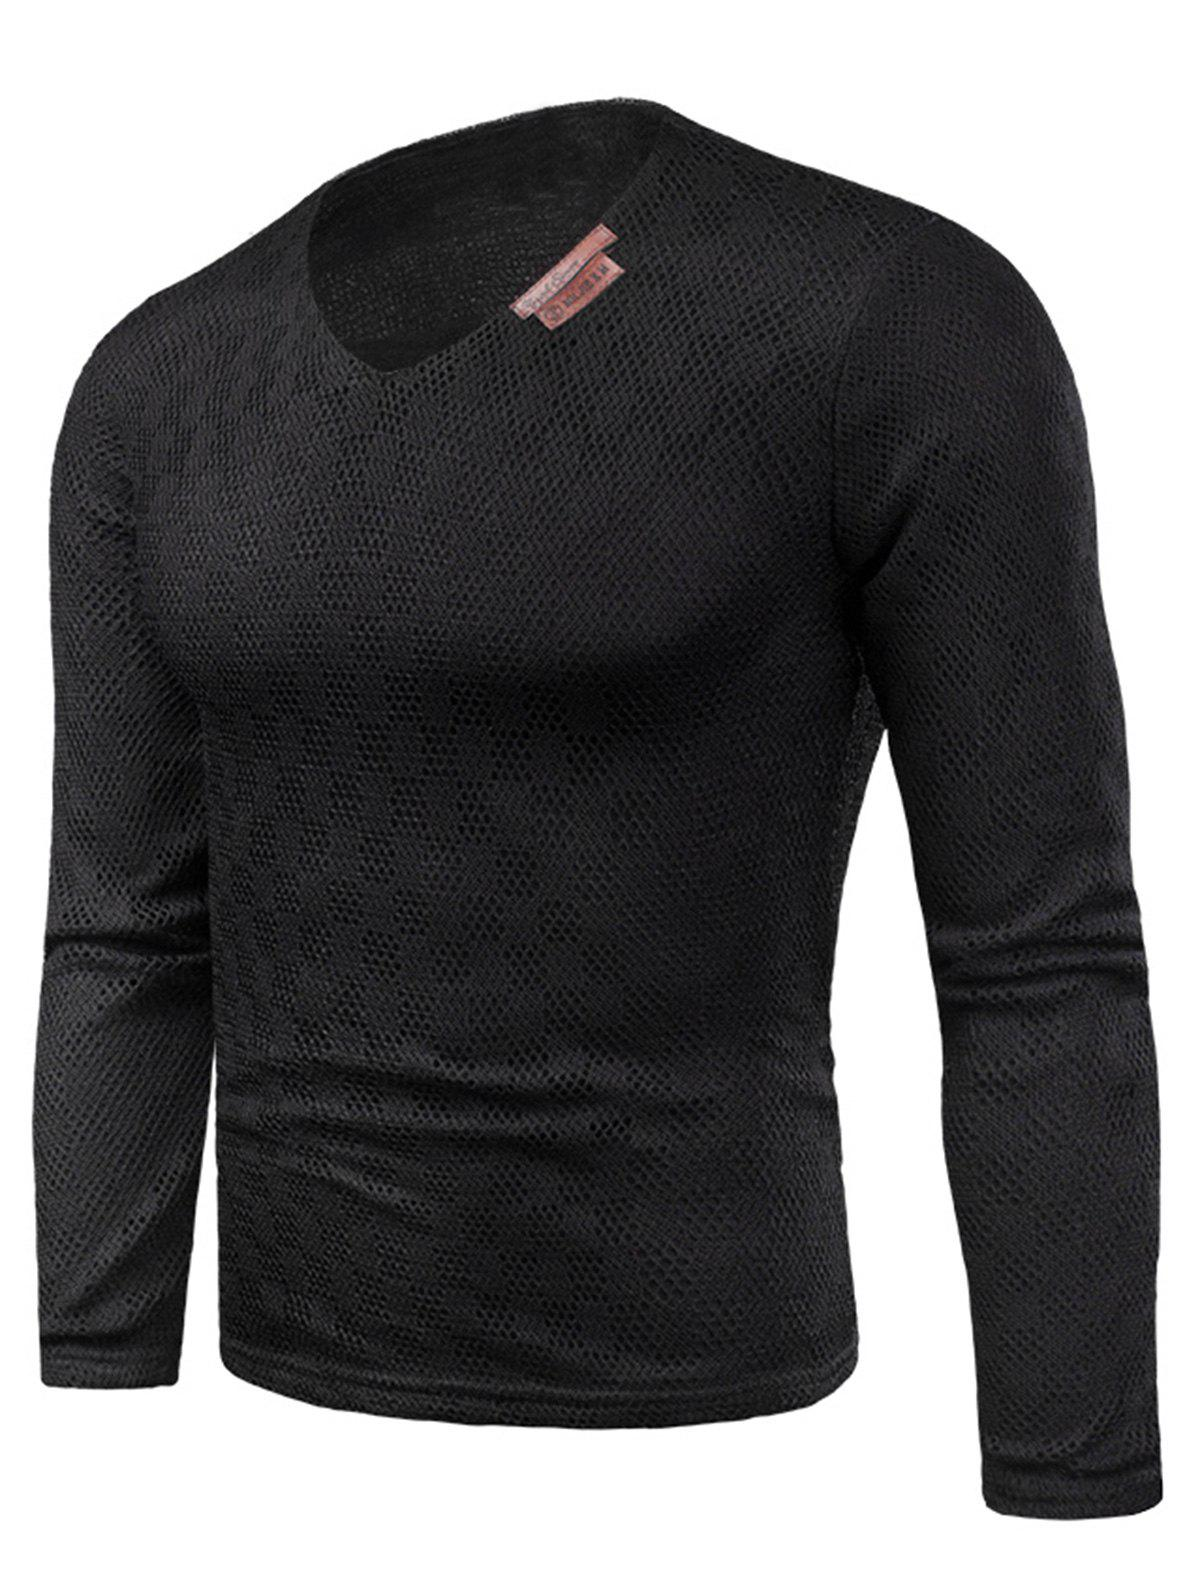 Discount V Neck Applique Knitted Fleece T-shirt